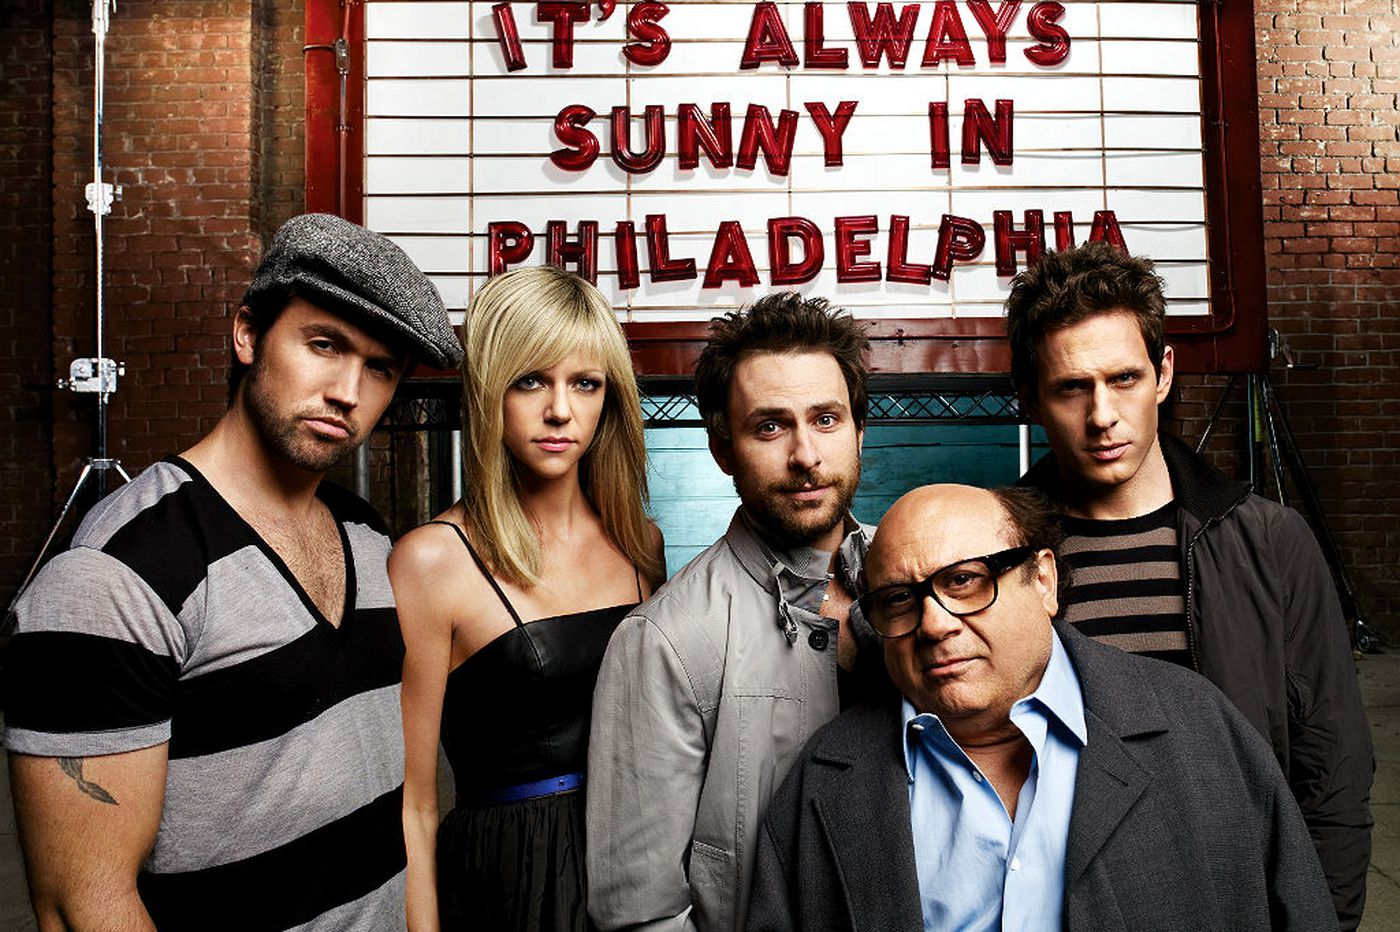 Video: 'It's Always Sunny in Philadelphia's' Season 14 trailer